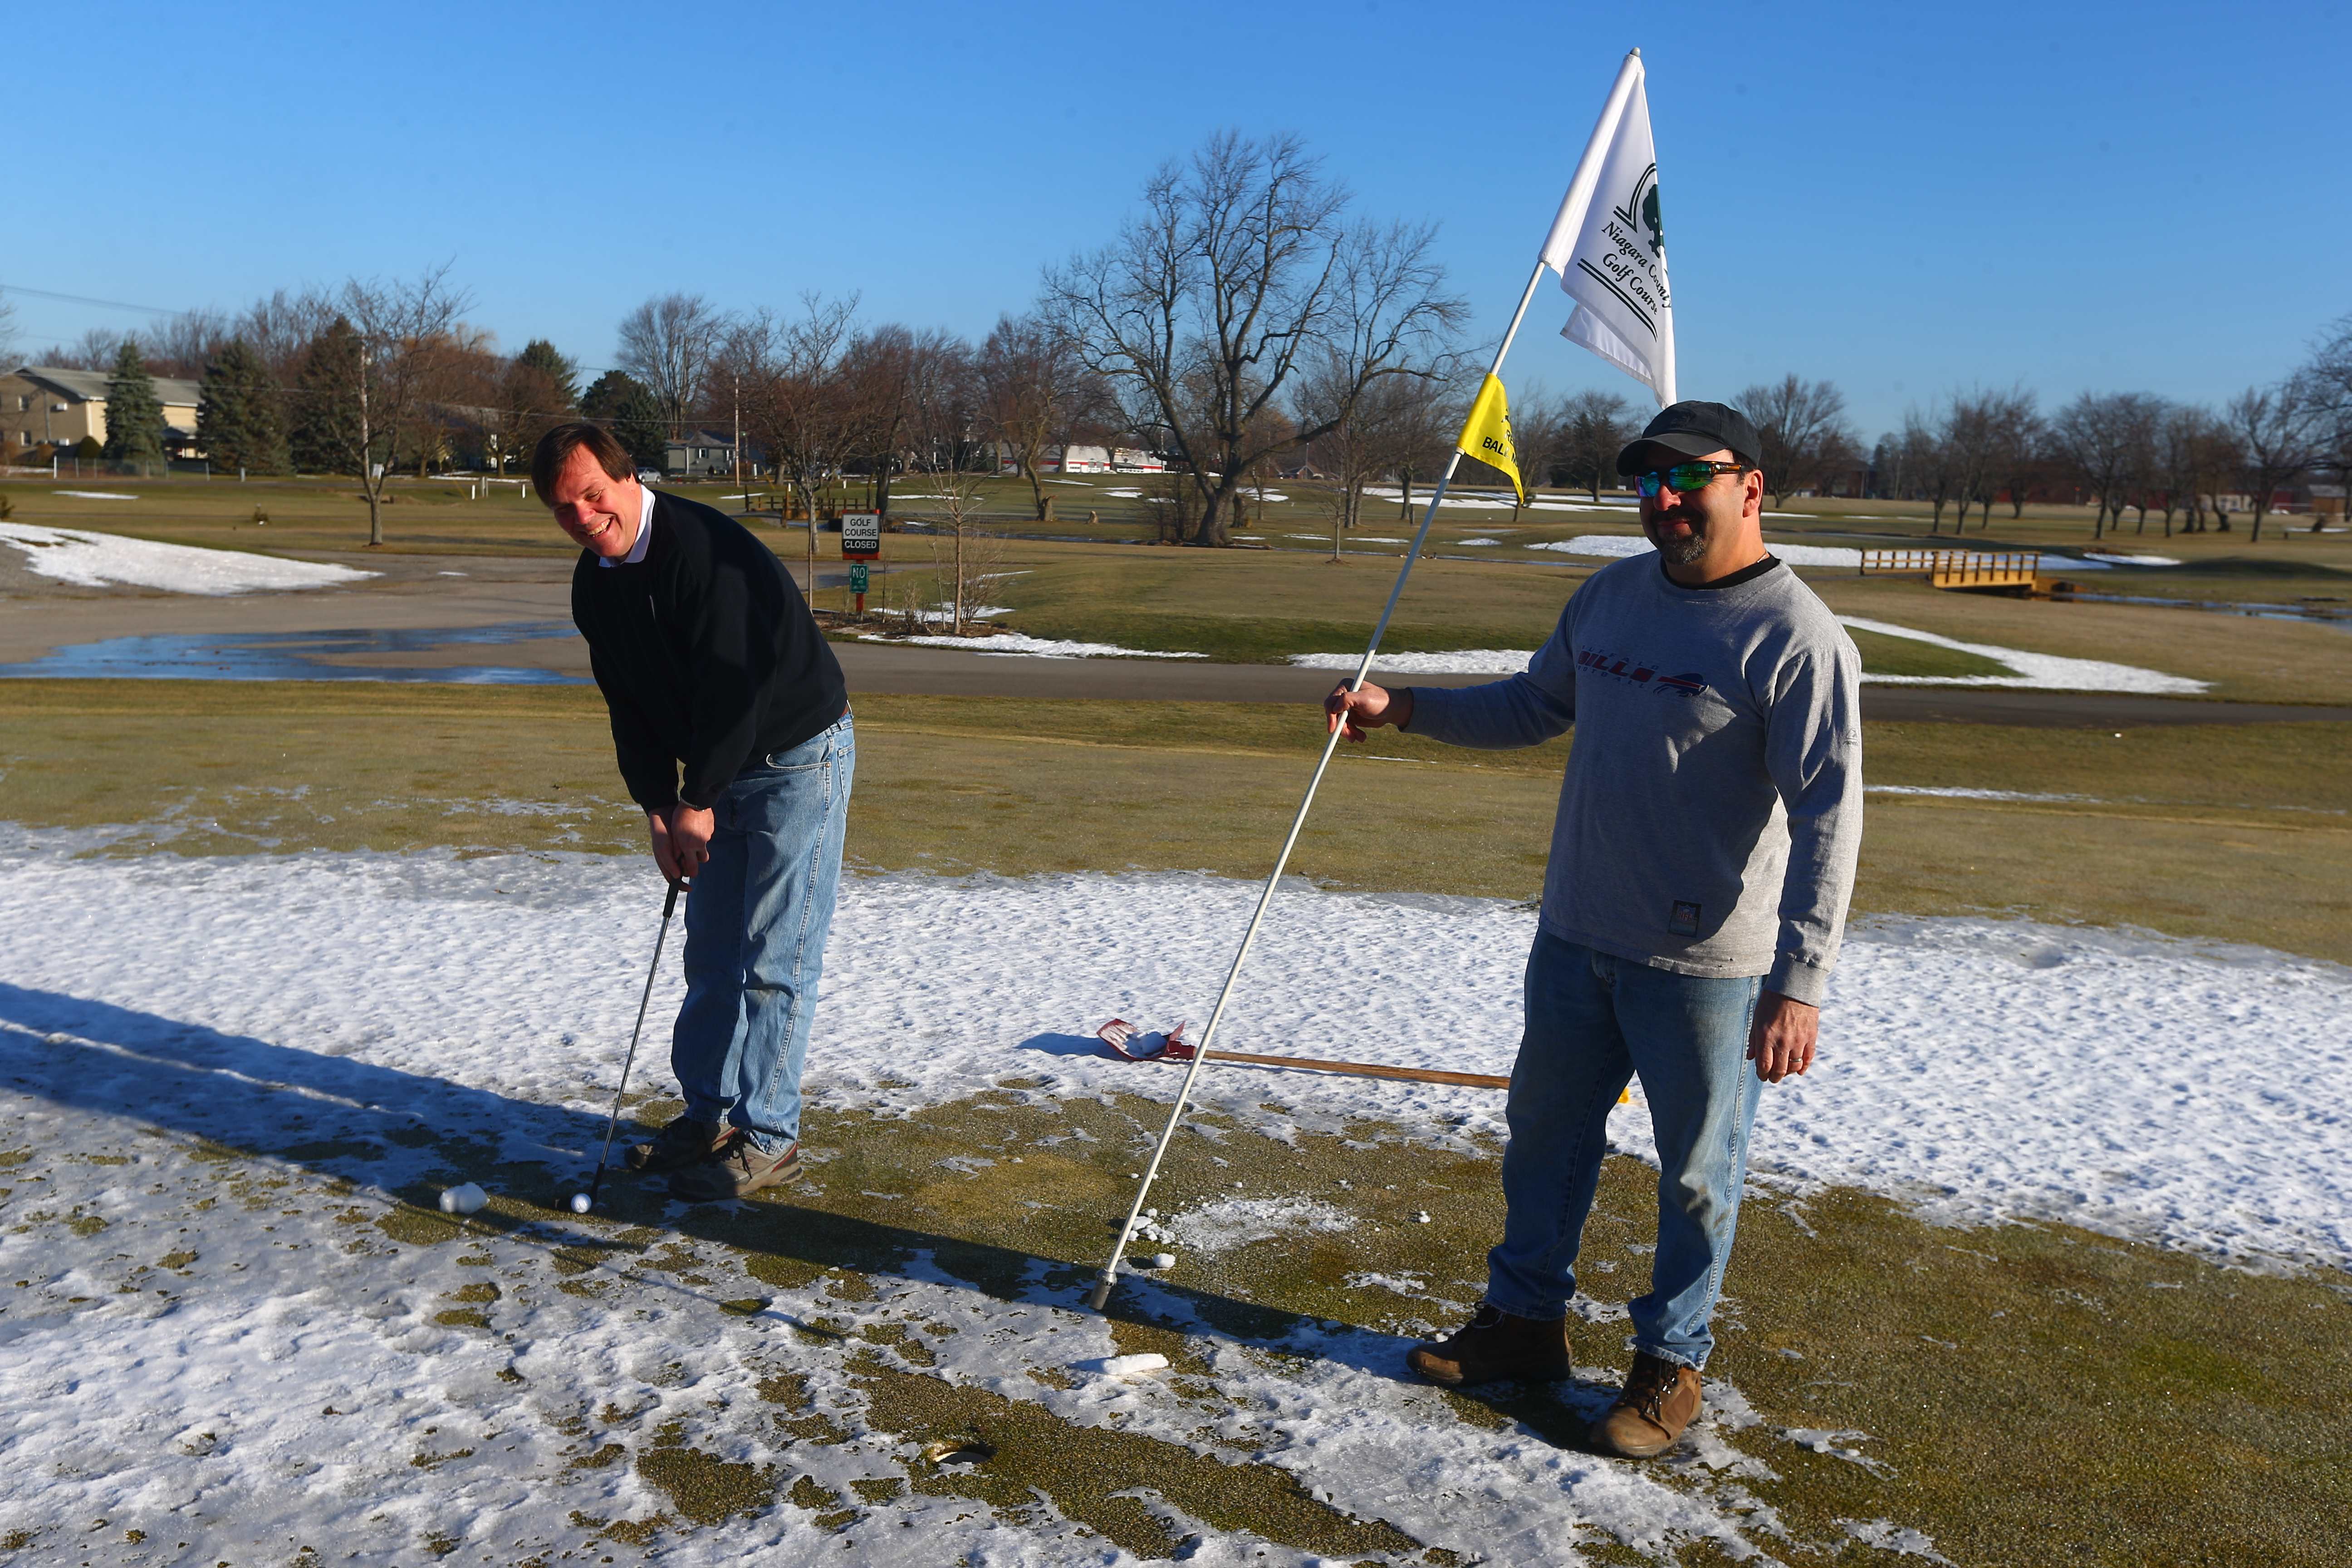 Niagara County Golf Course golf director Thomas Yaeger putts as  Tom Farrell, the course's superintendent greens keeper, provides some assistance with the flag. (John Hickey/Buffalo News)